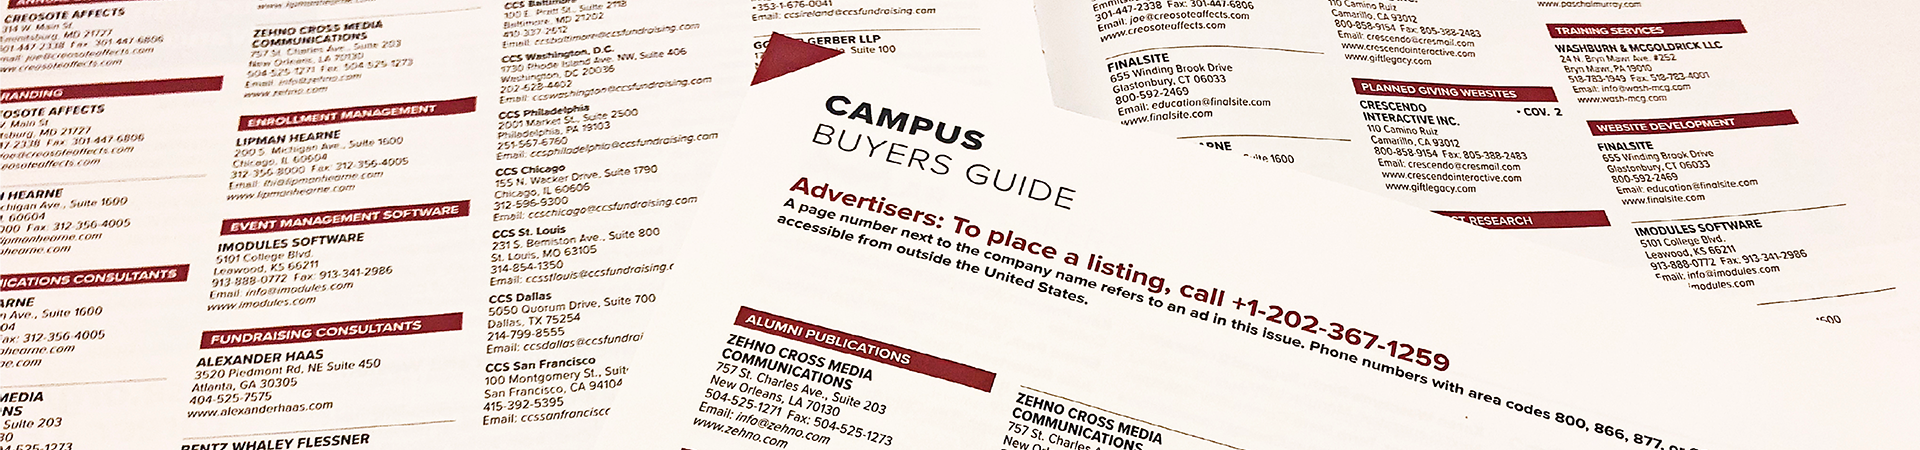 Campus Buyer's Guide